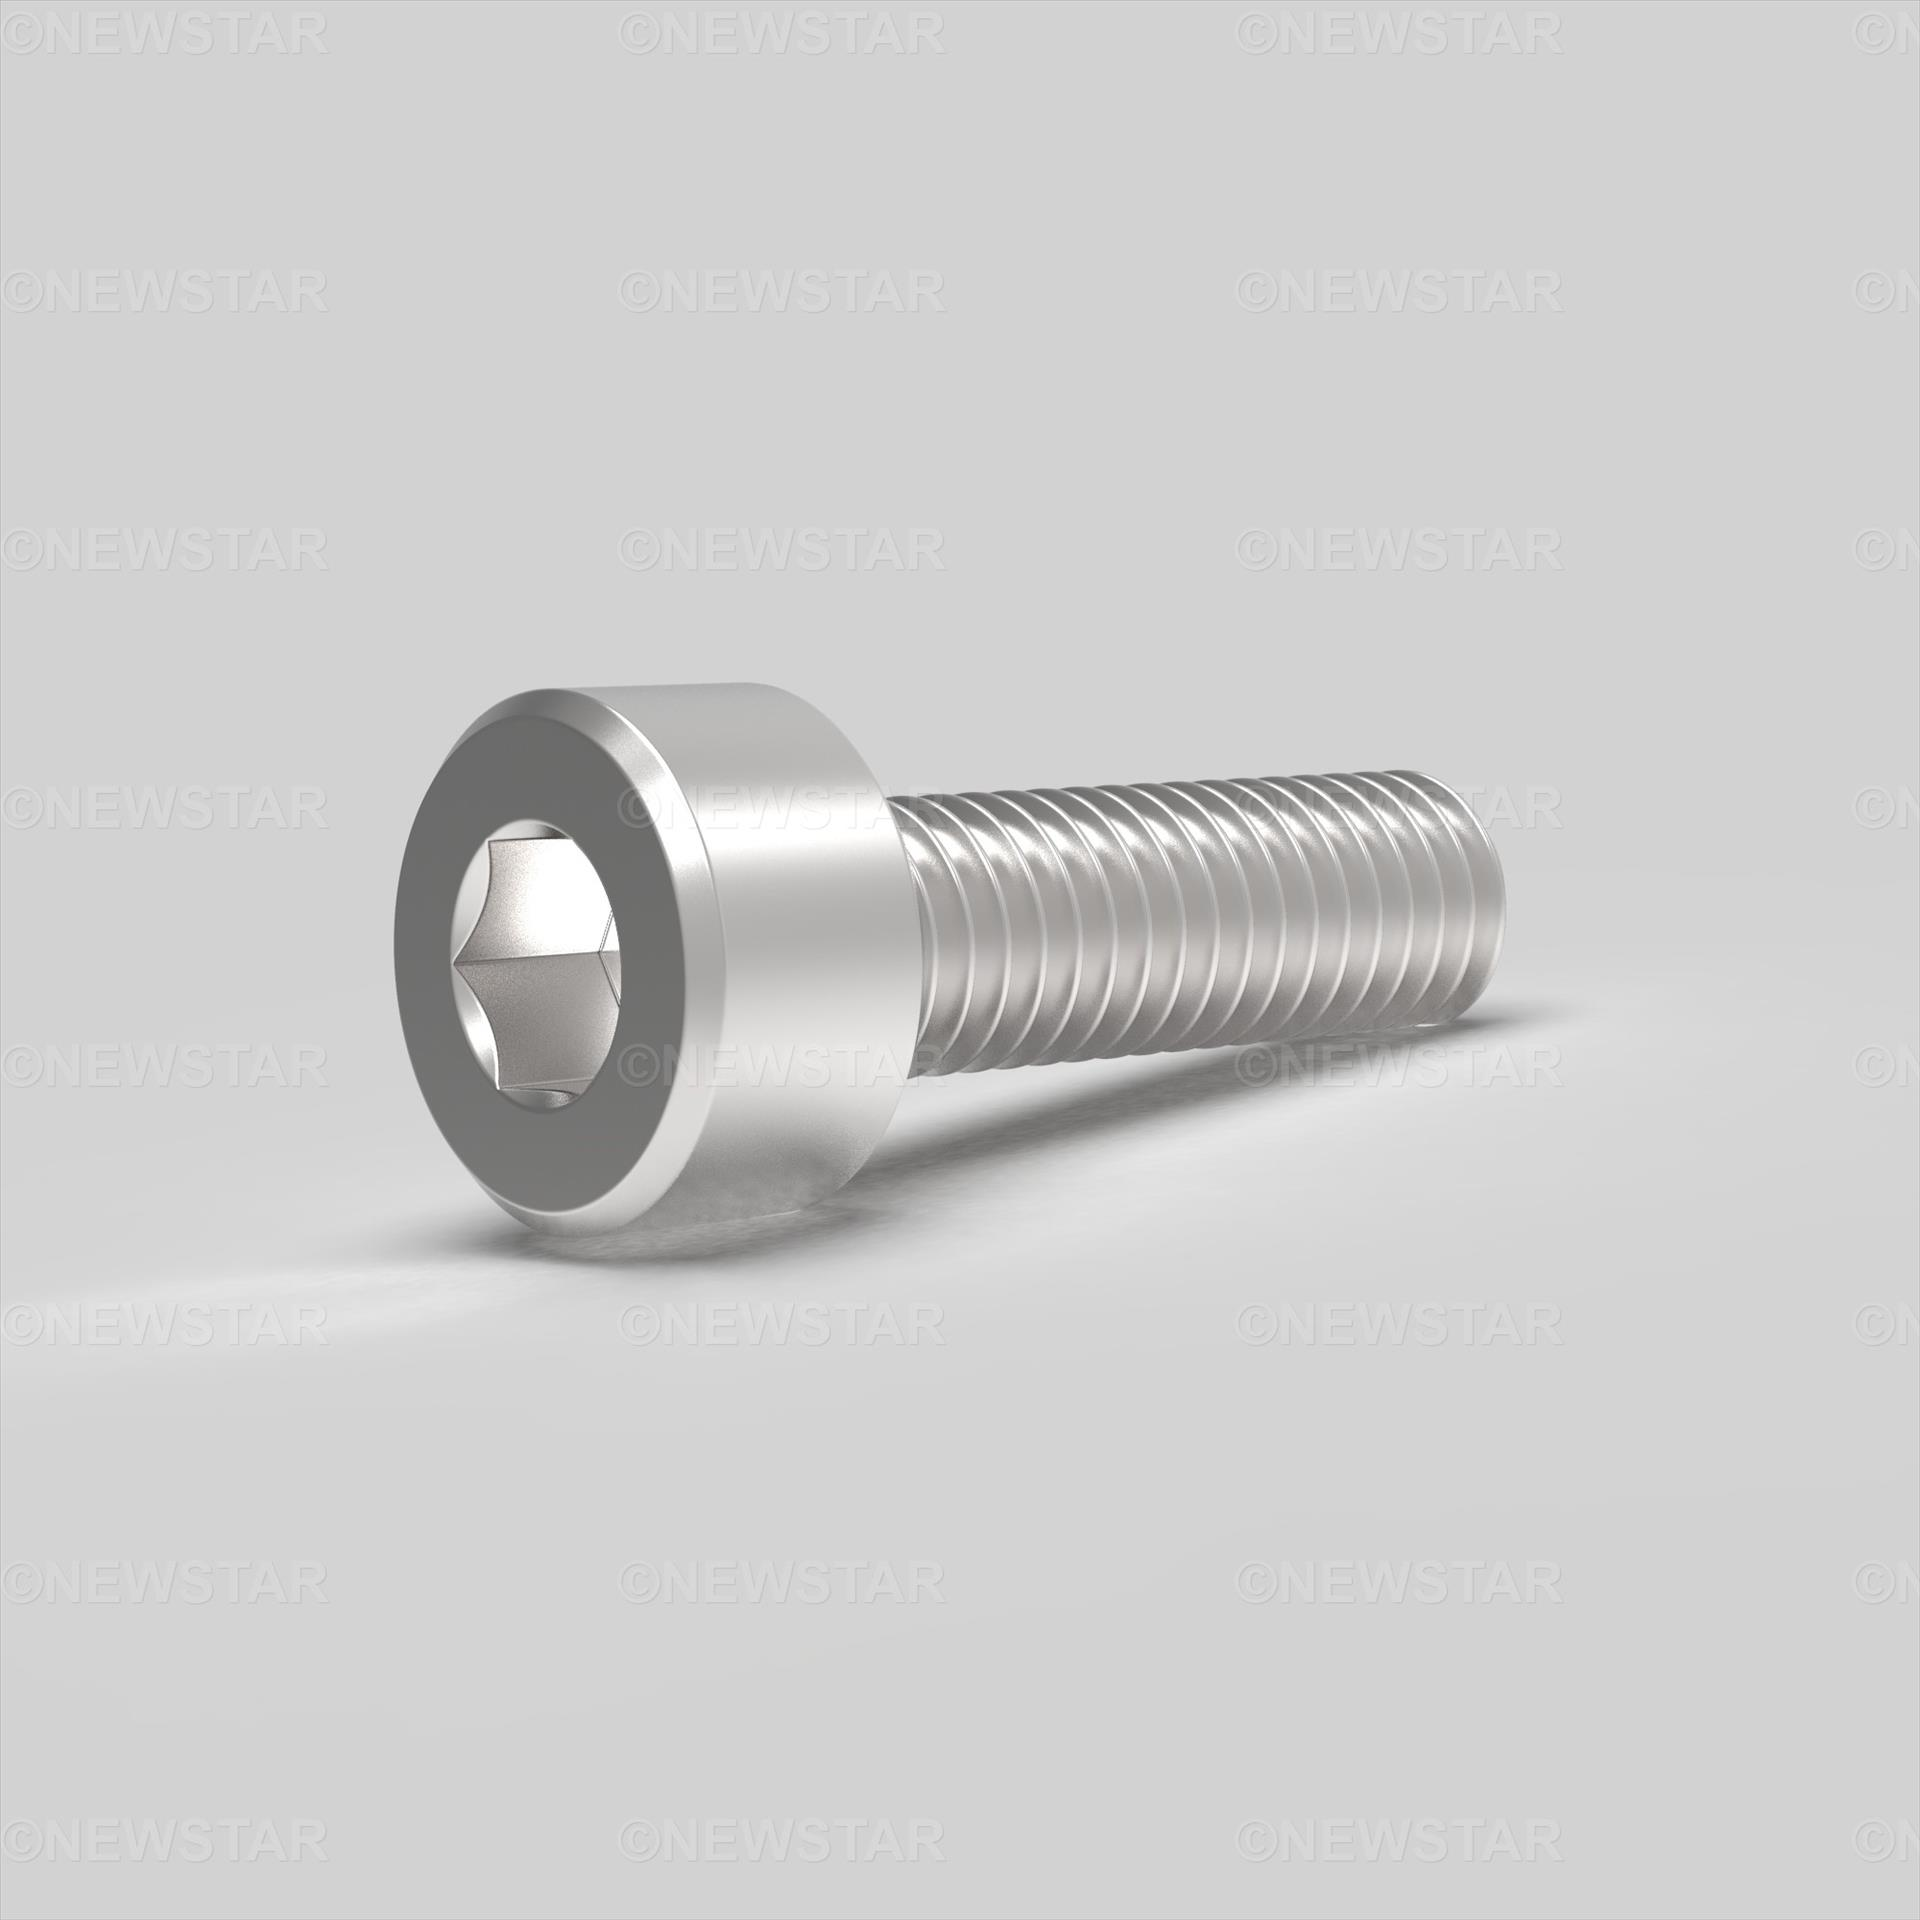 M1.4 X 2 Socket Cap Screw DIN 912 A2 Stainless Steel